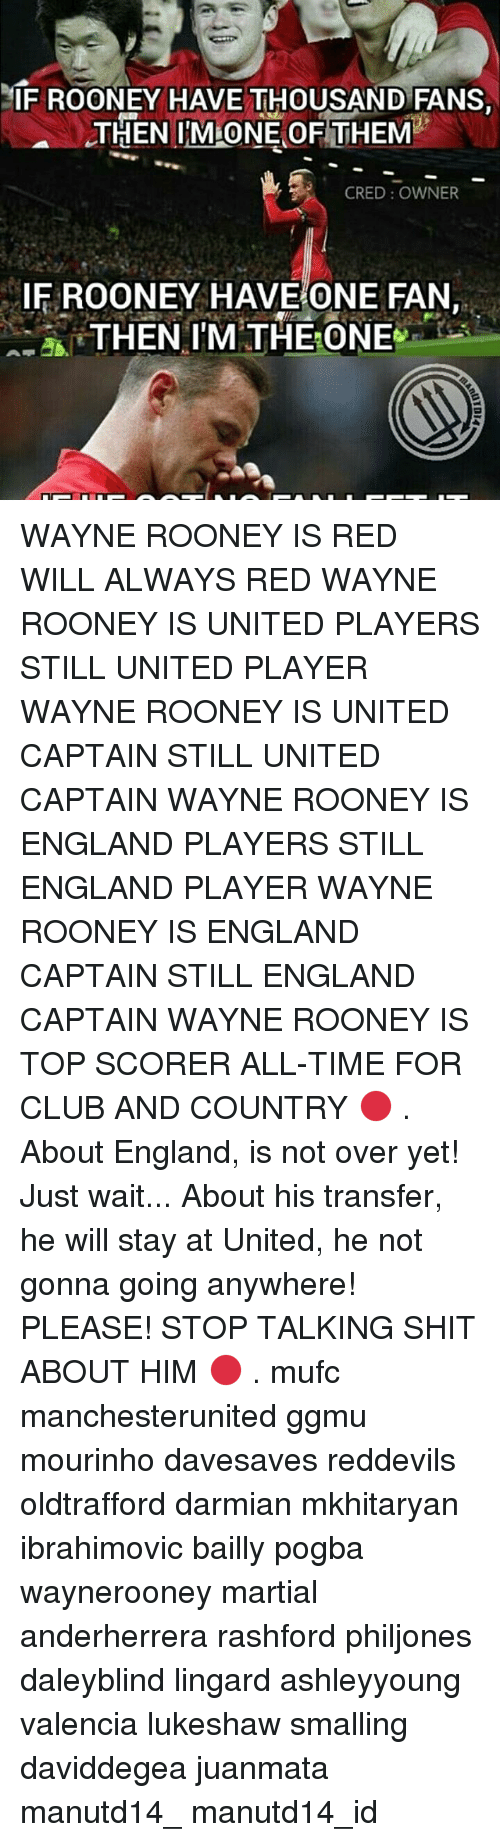 Memes, 🤖, and Red: IF ROONEY HAVE THOUSAND FANS  THEN MONE OF THEM  CRED OWNER  IF ROONEY HAVE ONE FAN  A THEN I'M THE ONE WAYNE ROONEY IS RED WILL ALWAYS RED WAYNE ROONEY IS UNITED PLAYERS STILL UNITED PLAYER WAYNE ROONEY IS UNITED CAPTAIN STILL UNITED CAPTAIN WAYNE ROONEY IS ENGLAND PLAYERS STILL ENGLAND PLAYER WAYNE ROONEY IS ENGLAND CAPTAIN STILL ENGLAND CAPTAIN WAYNE ROONEY IS TOP SCORER ALL-TIME FOR CLUB AND COUNTRY 🔴 . About England, is not over yet! Just wait... About his transfer, he will stay at United, he not gonna going anywhere! PLEASE! STOP TALKING SHIT ABOUT HIM 🔴 . mufc manchesterunited ggmu mourinho davesaves reddevils oldtrafford darmian mkhitaryan ibrahimovic bailly pogba waynerooney martial anderherrera rashford philjones daleyblind lingard ashleyyoung valencia lukeshaw smalling daviddegea juanmata manutd14_ manutd14_id